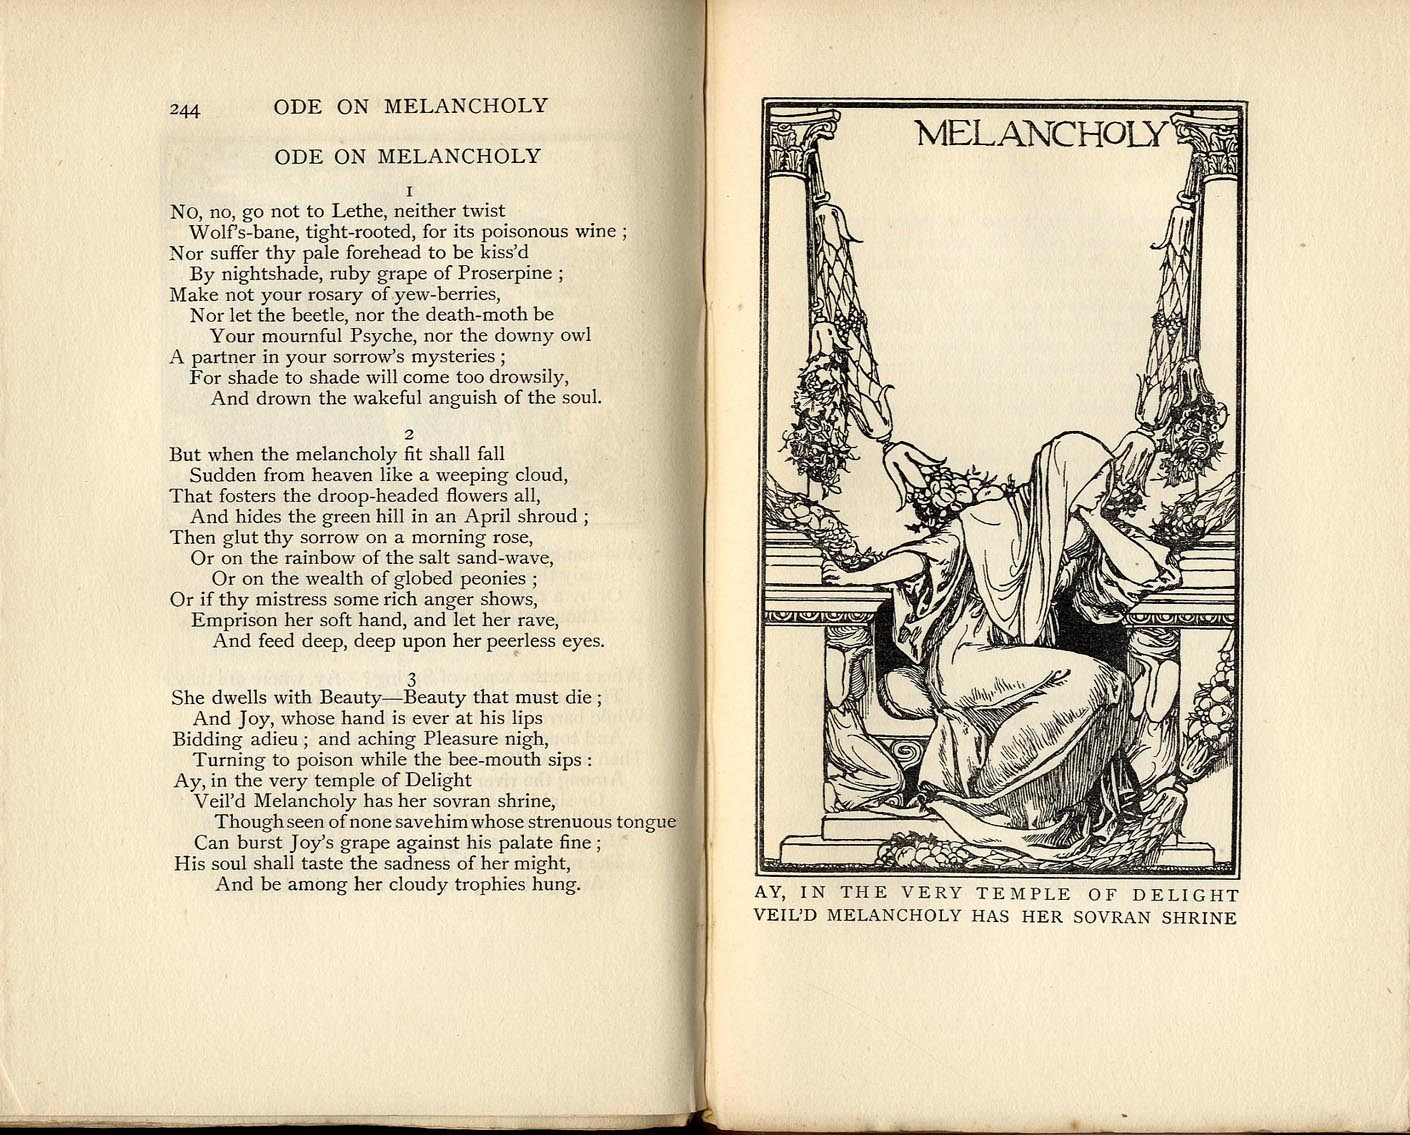 ode on melancholy commentary Poetry & immortality: john keats' 'ode to a nightingale' transcript date: tuesday, 12 may 2015 - 6:00pm location: museum of london 12 may 2015 poetry and immortality.